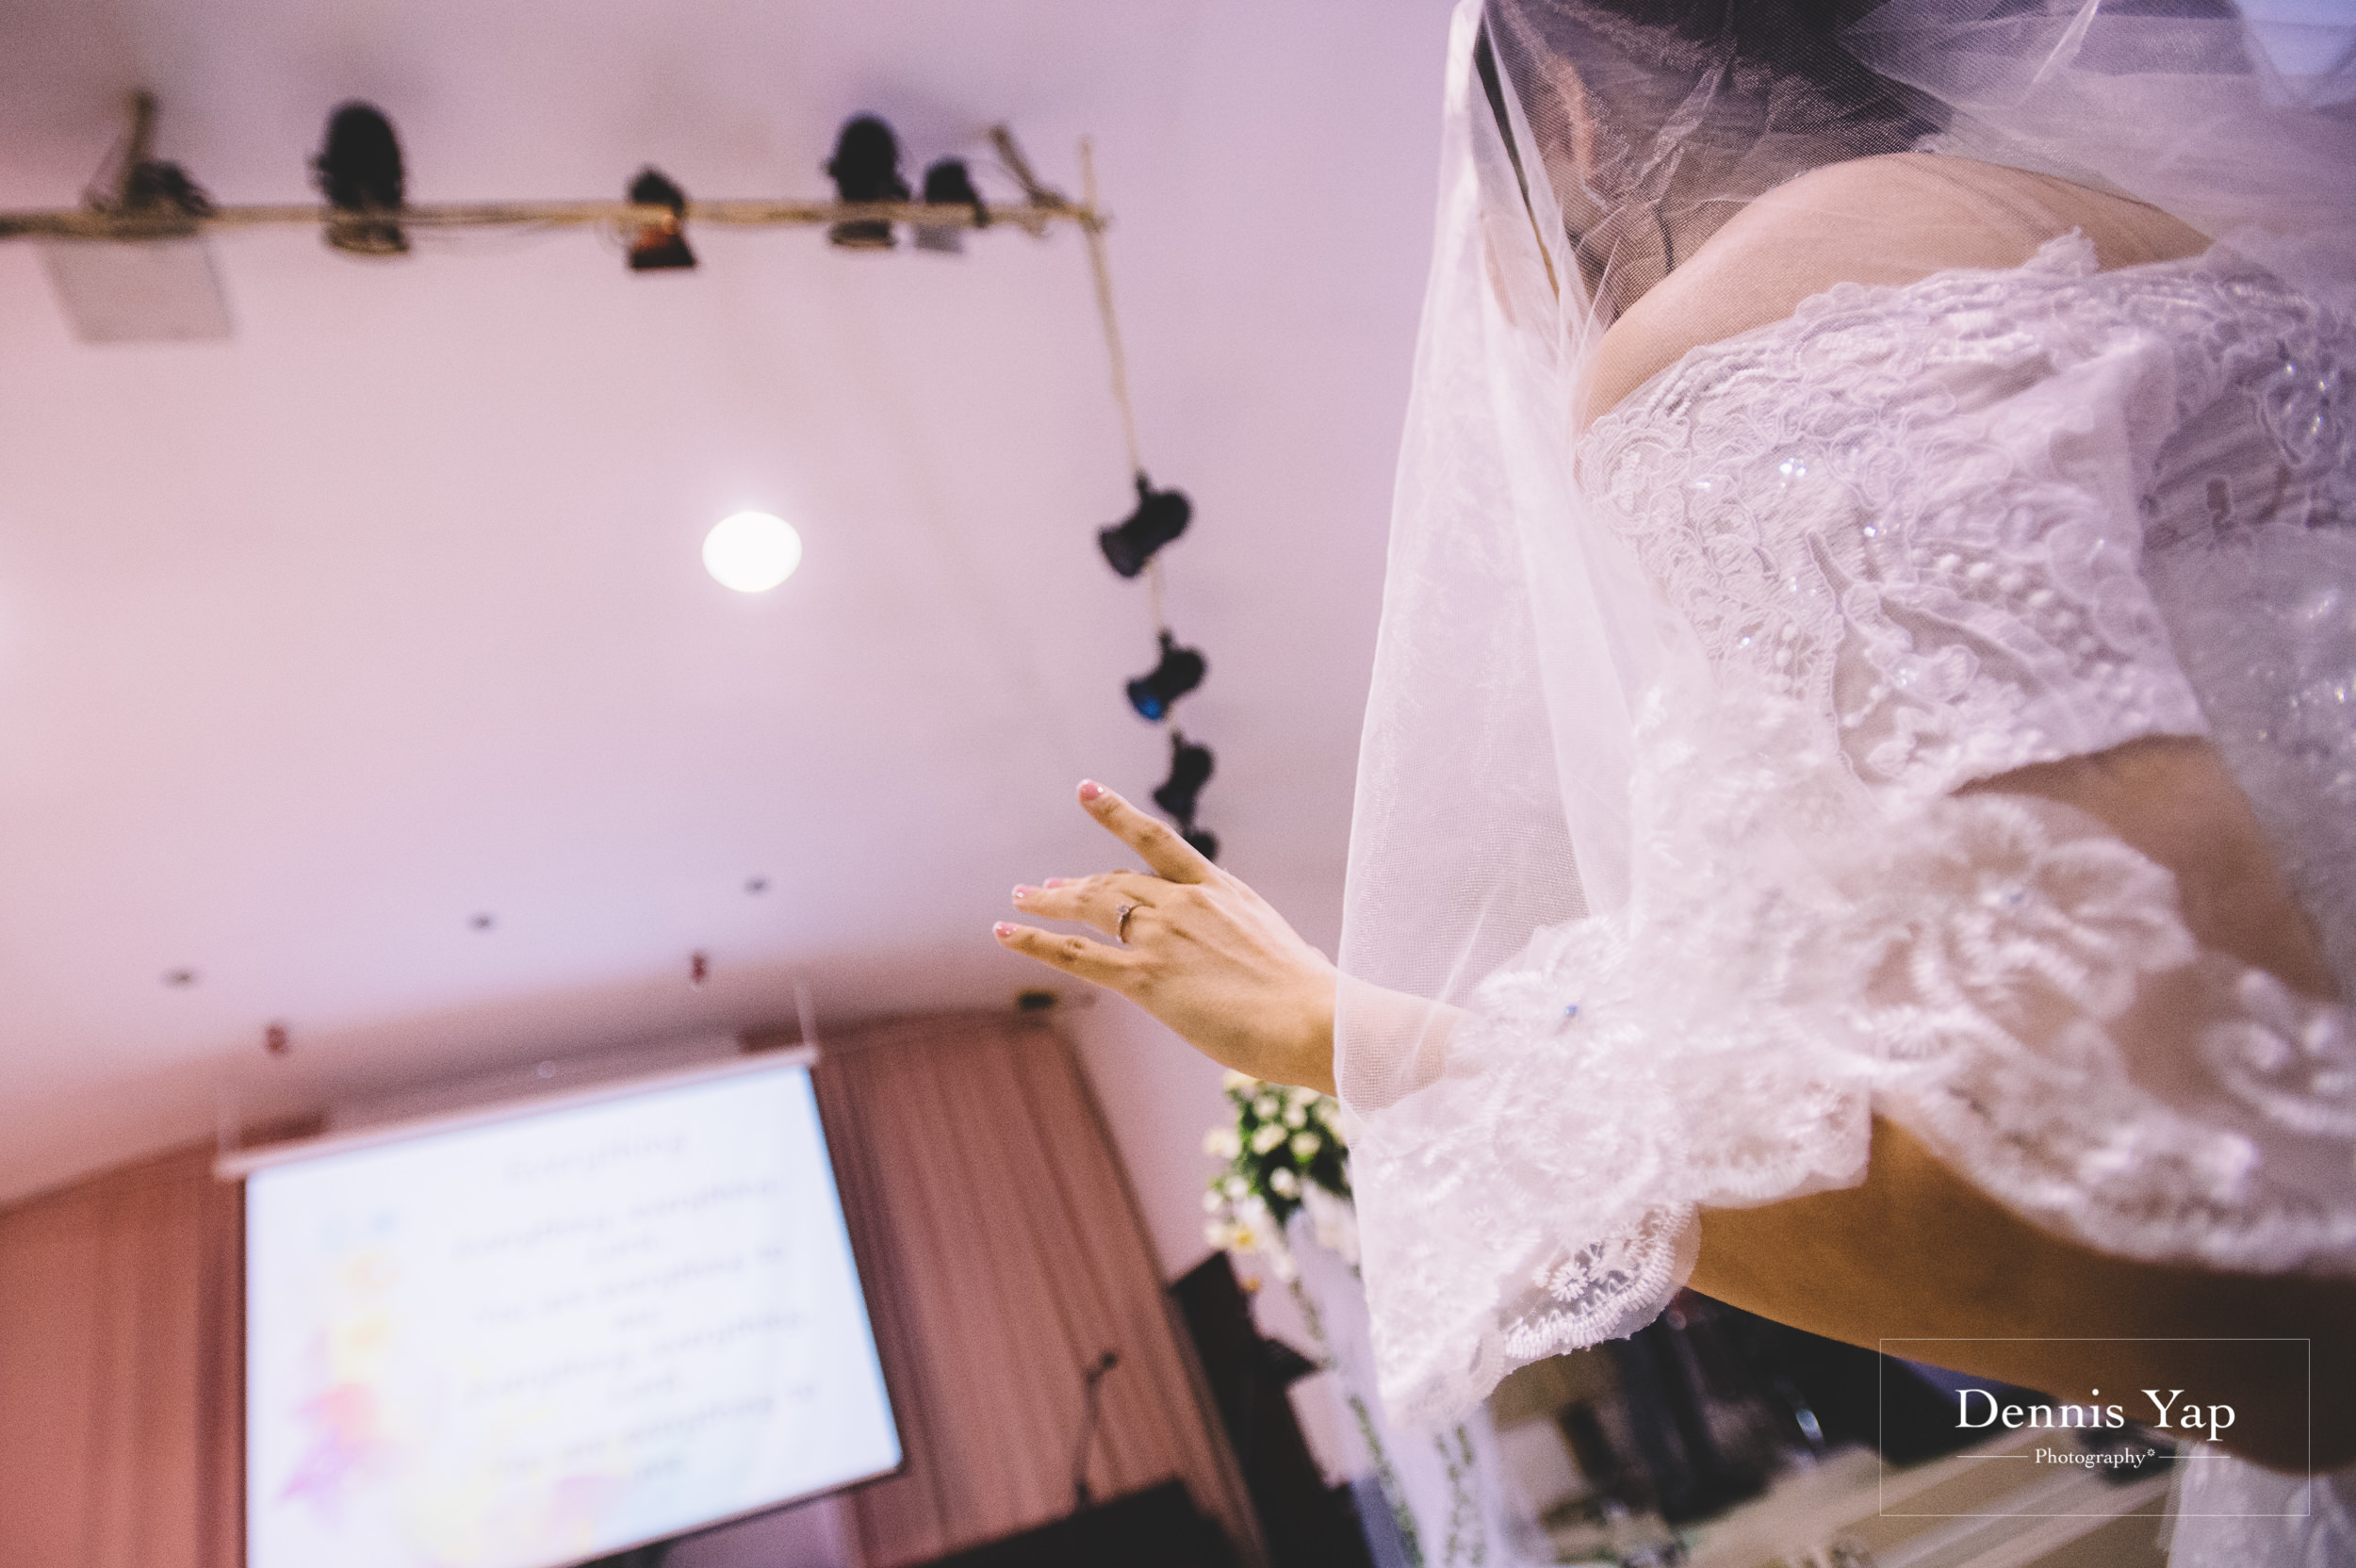 daniel amelia wedding day wesley methodist church setiawan dennis yap photography malaysia0014daniel amelia wedding day westly methodist church setiawan dennis yap photography malaysia-14.jpg